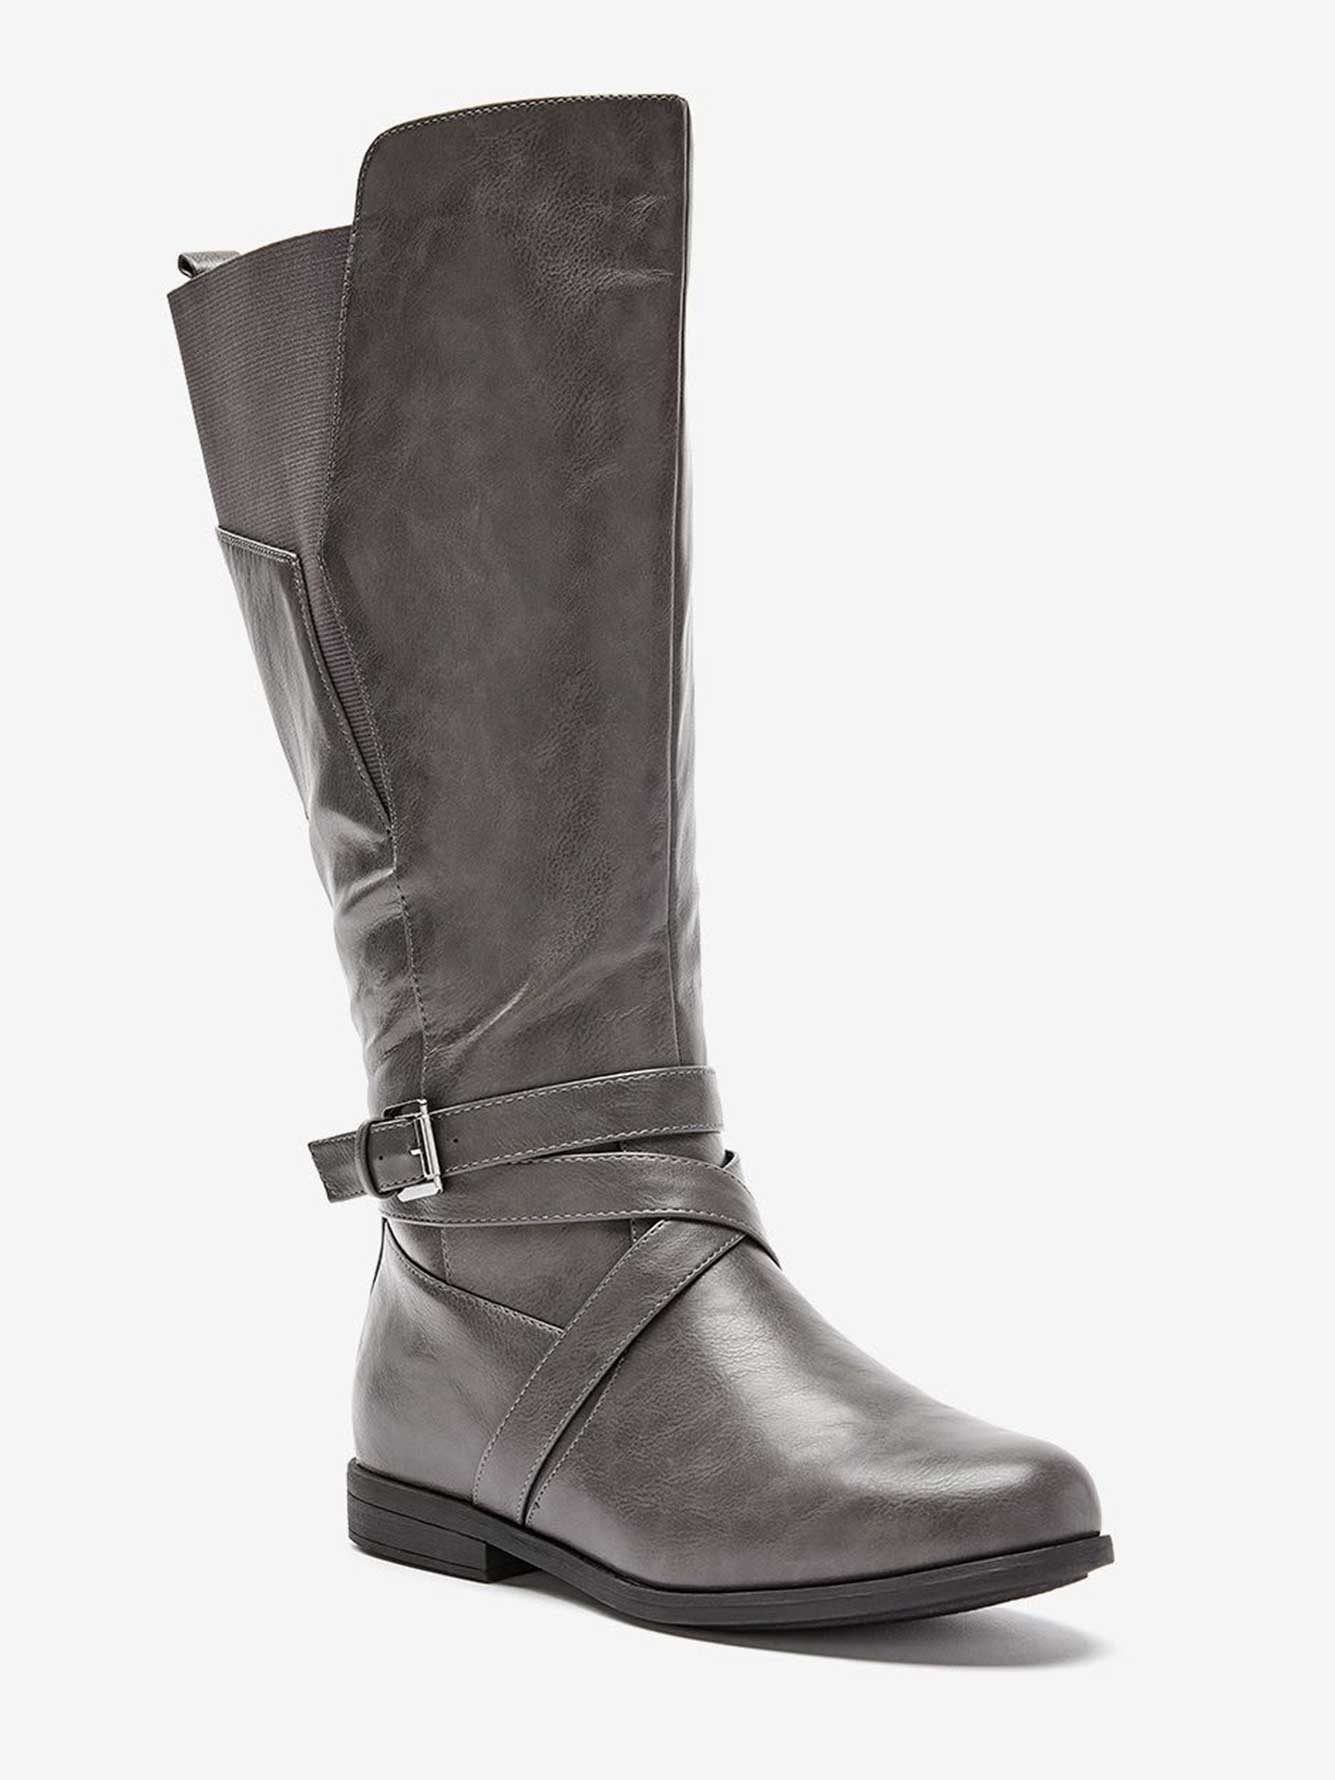 Tall Boot with Crisscross Strap and Elastic Detail - Sage